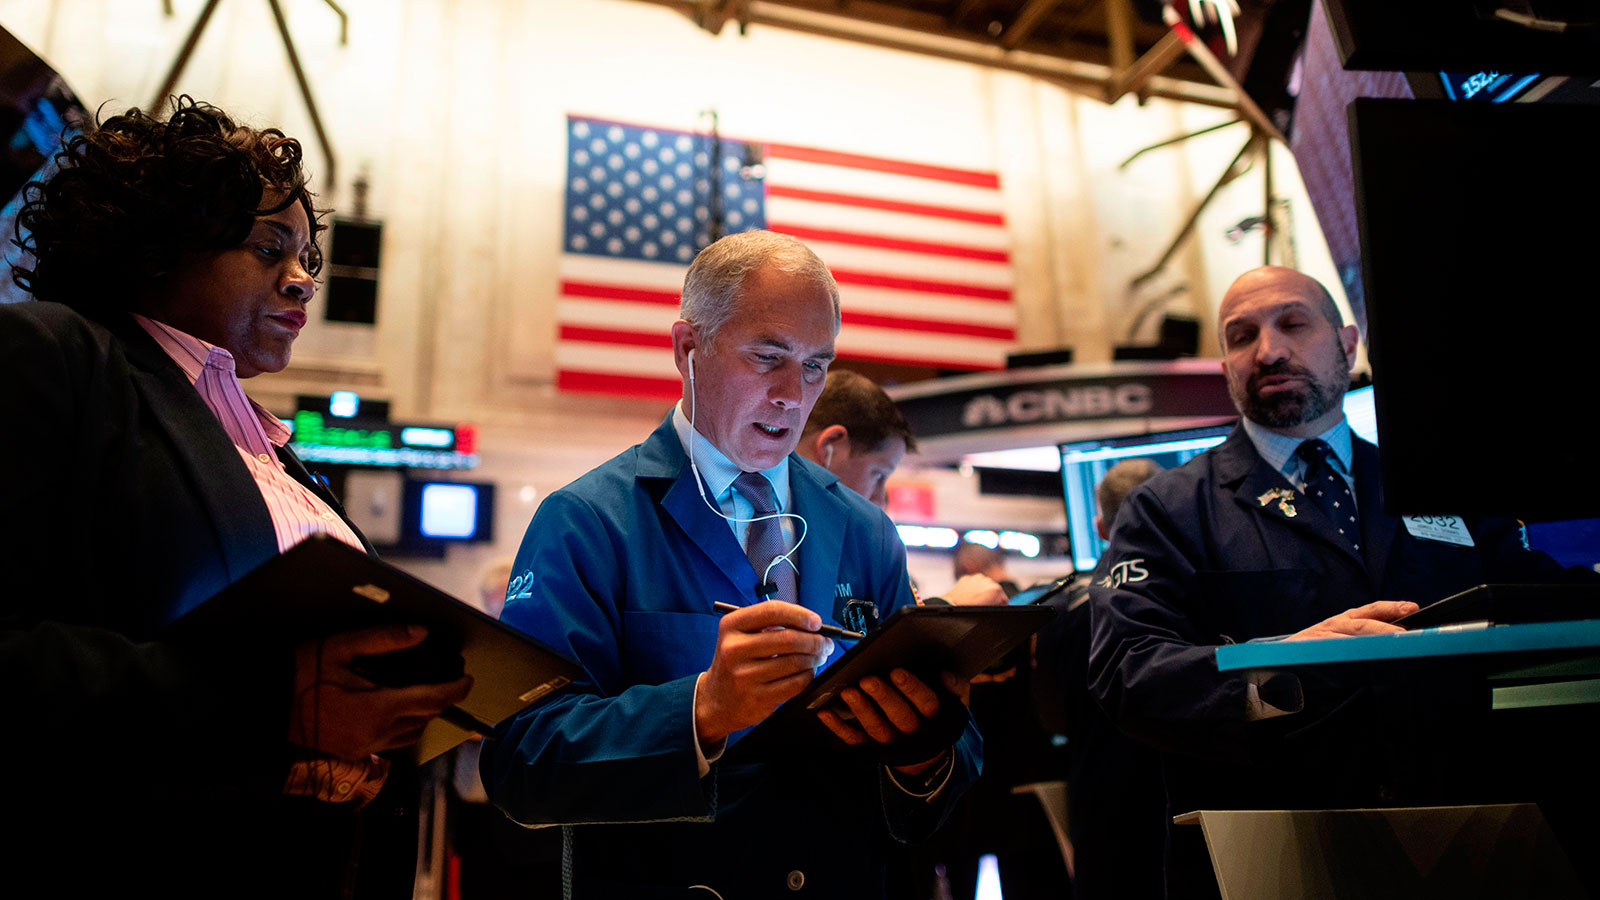 Traders work during the opening bell at the New York Stock Exchange at Wall Street in New York City.